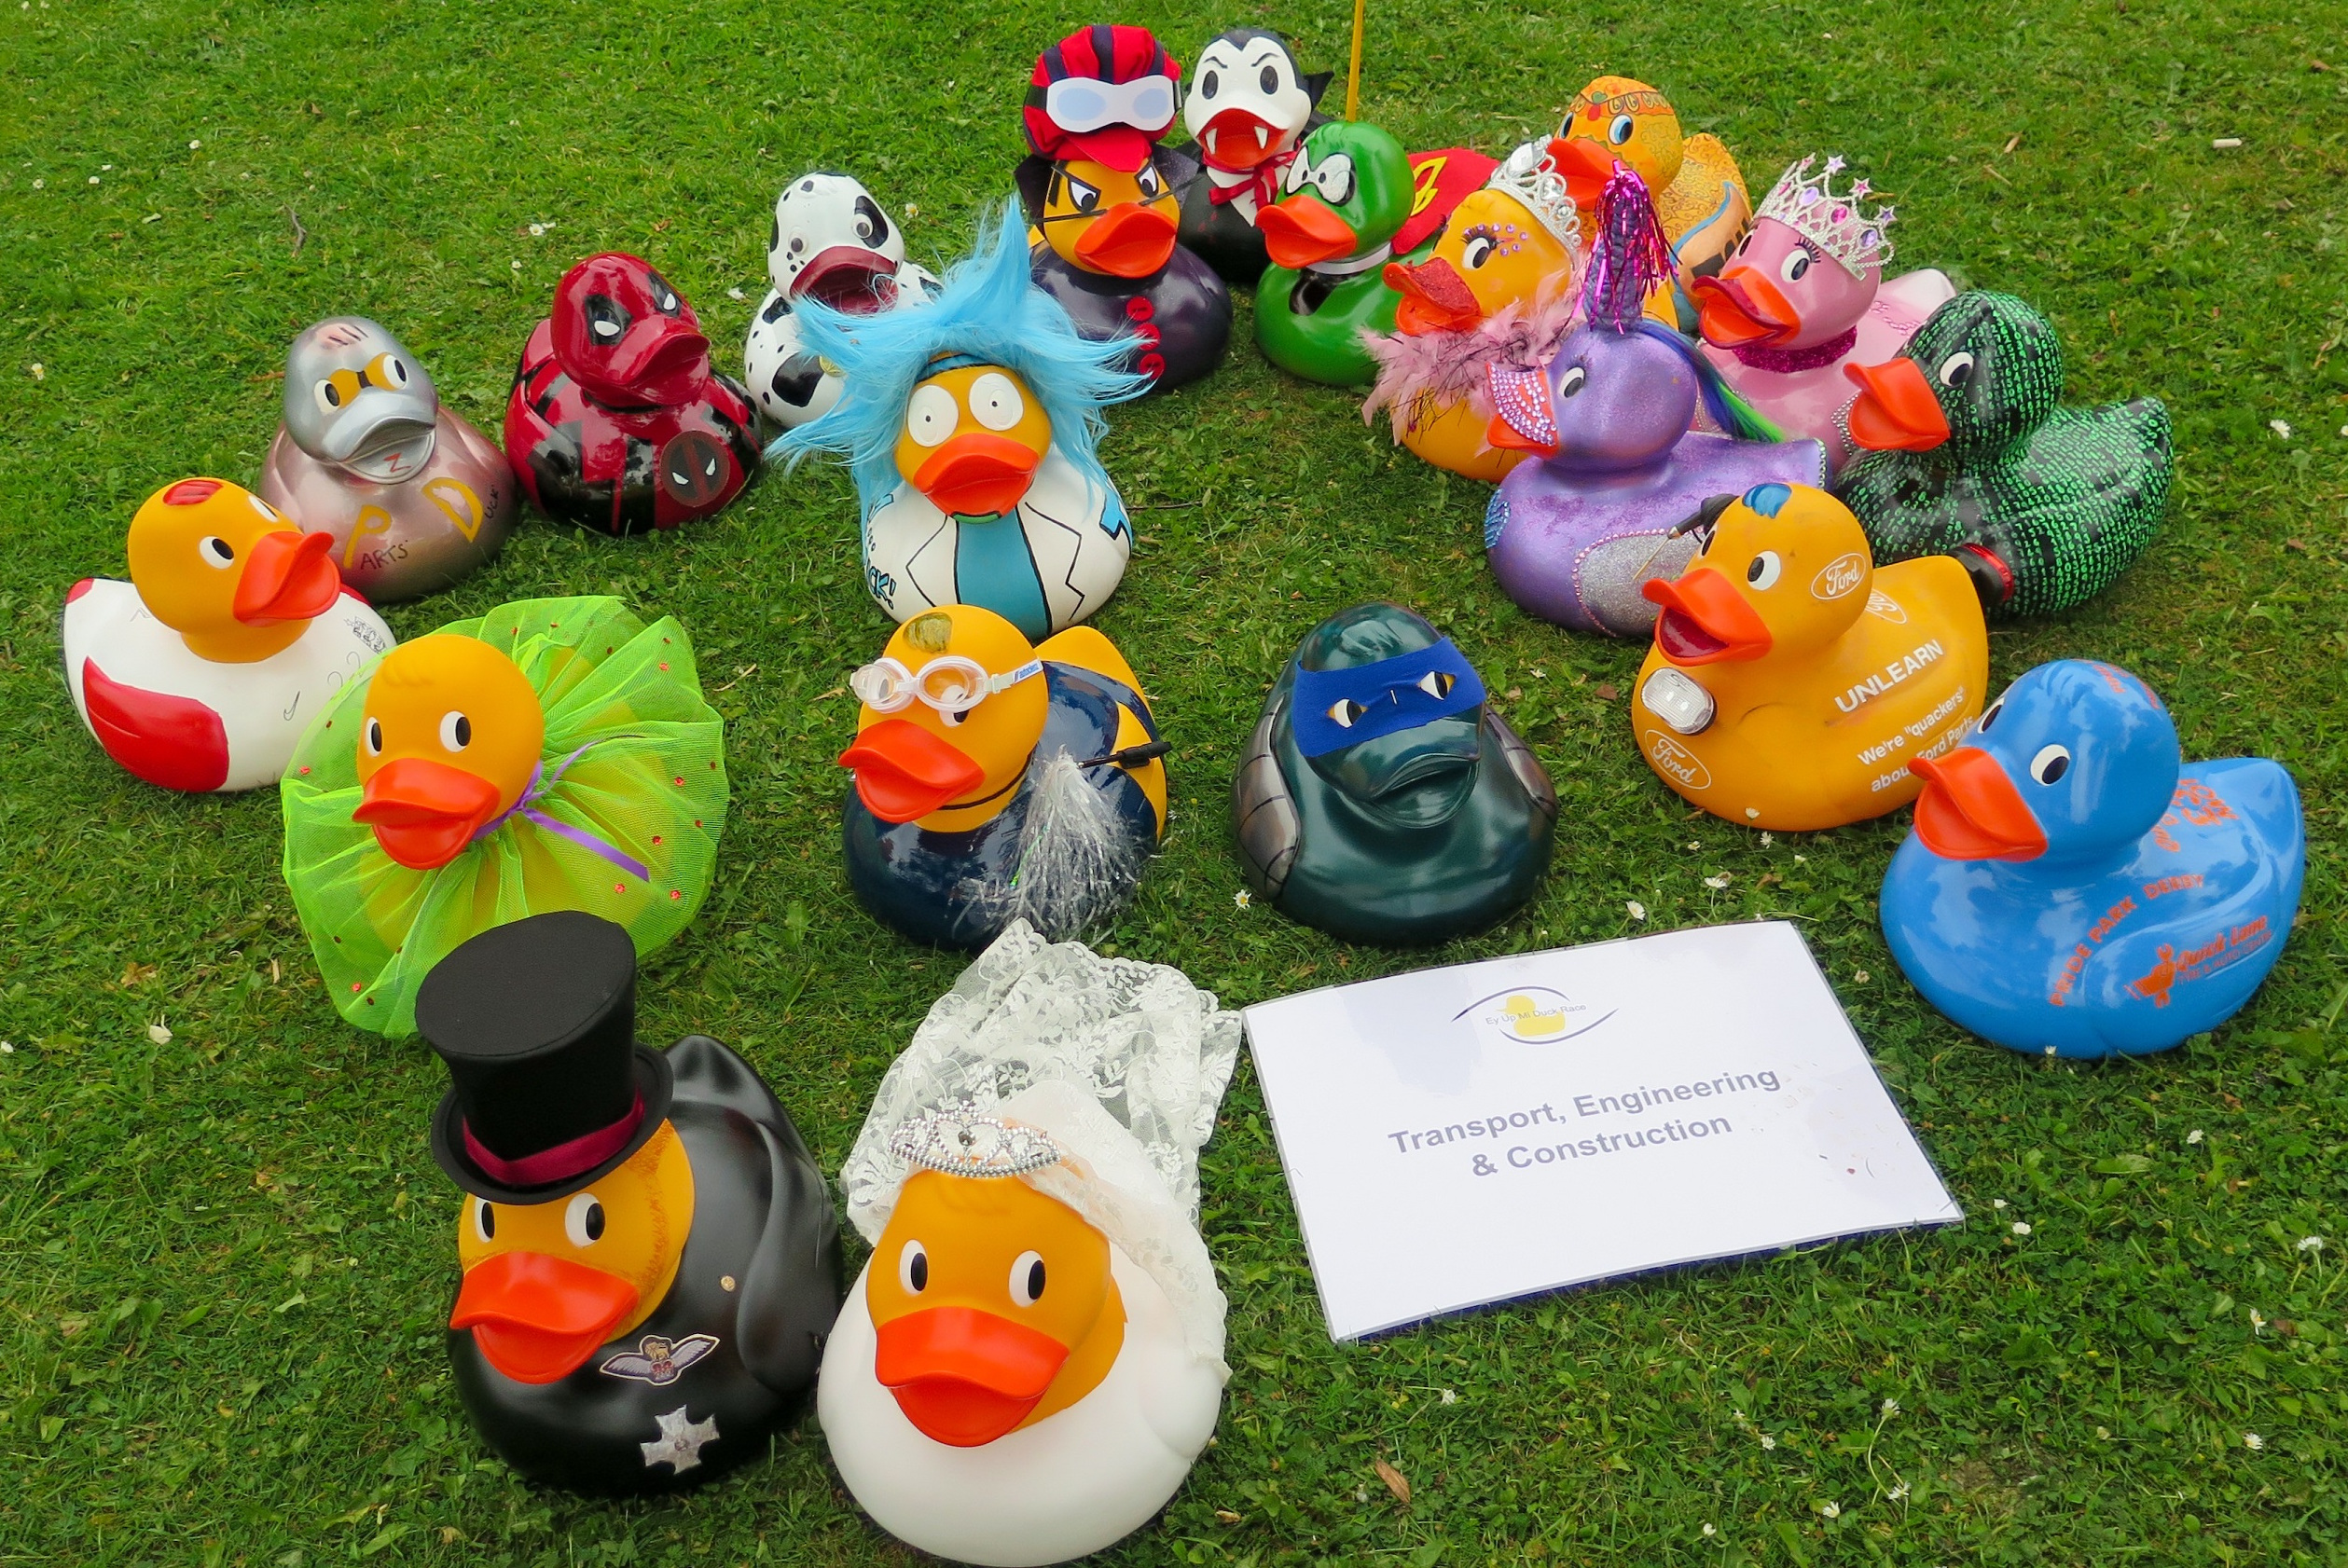 Image showing giant ducks before the 2018 Duck Race